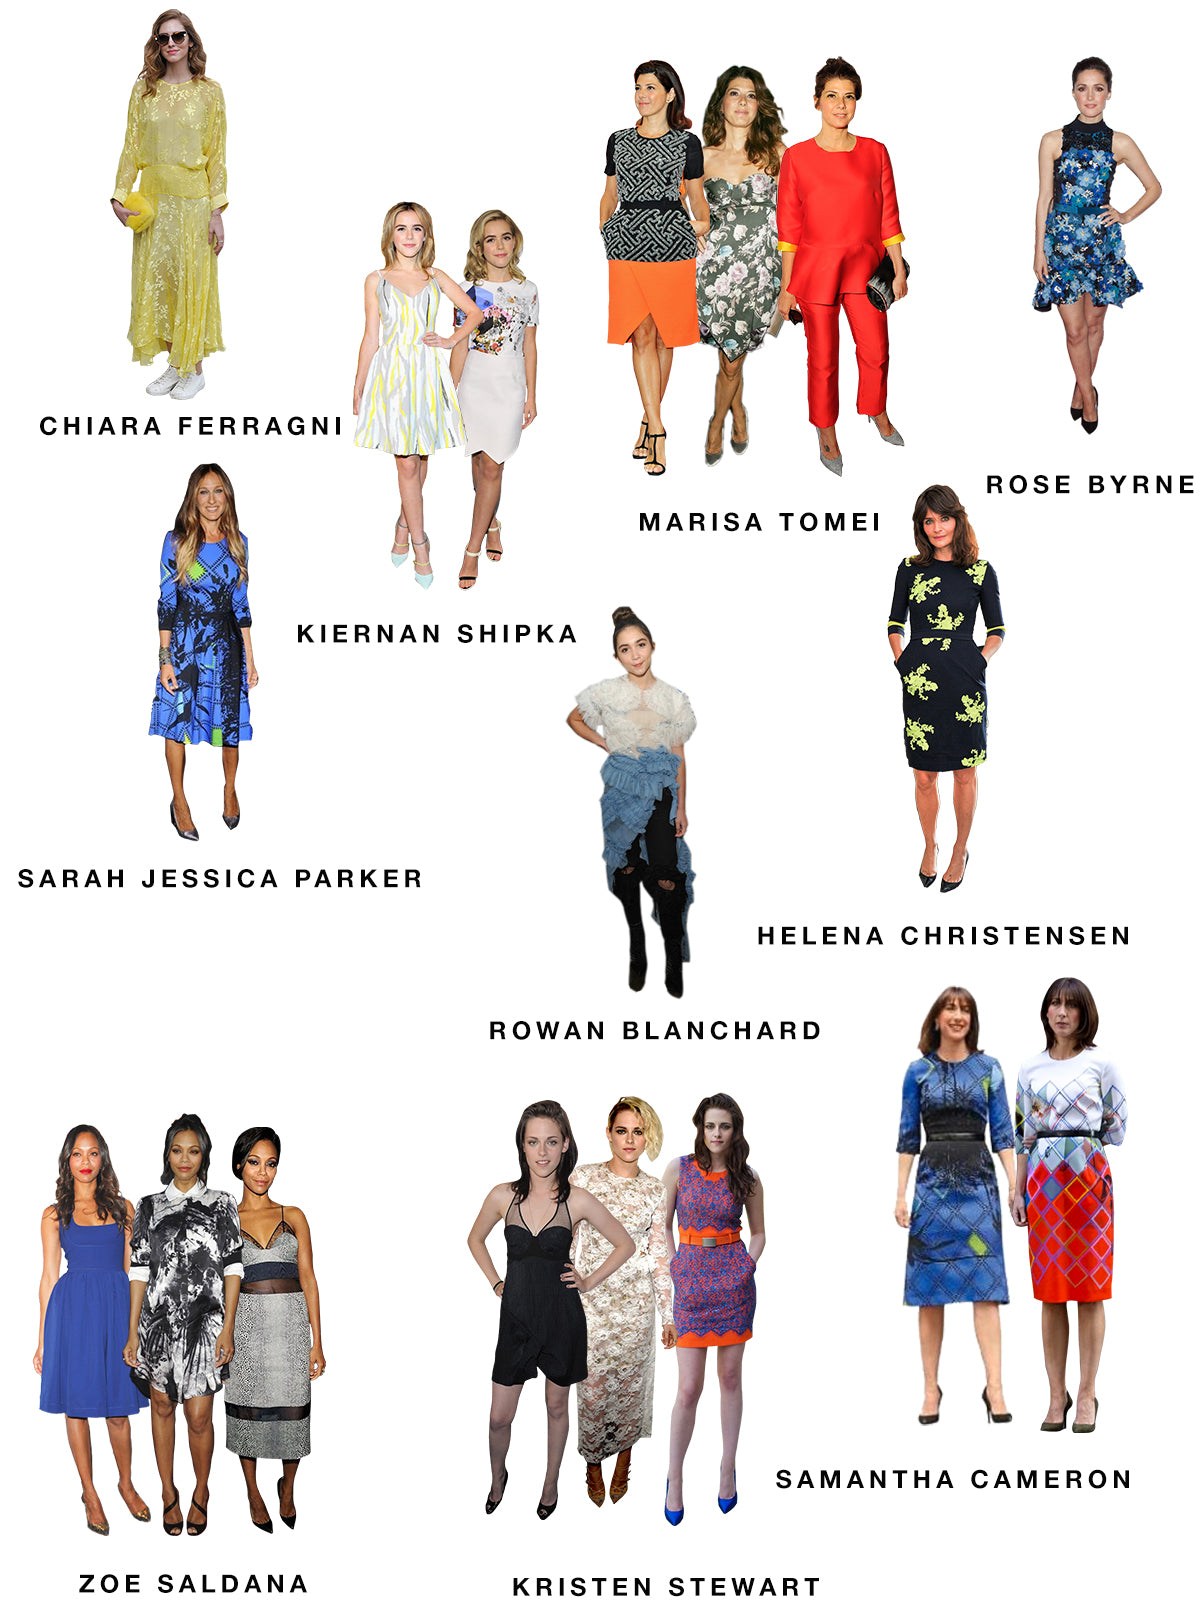 Samantha Cameron, Kristen Stewart, Sarah Jessica Parker and other celebrities wearing Preen